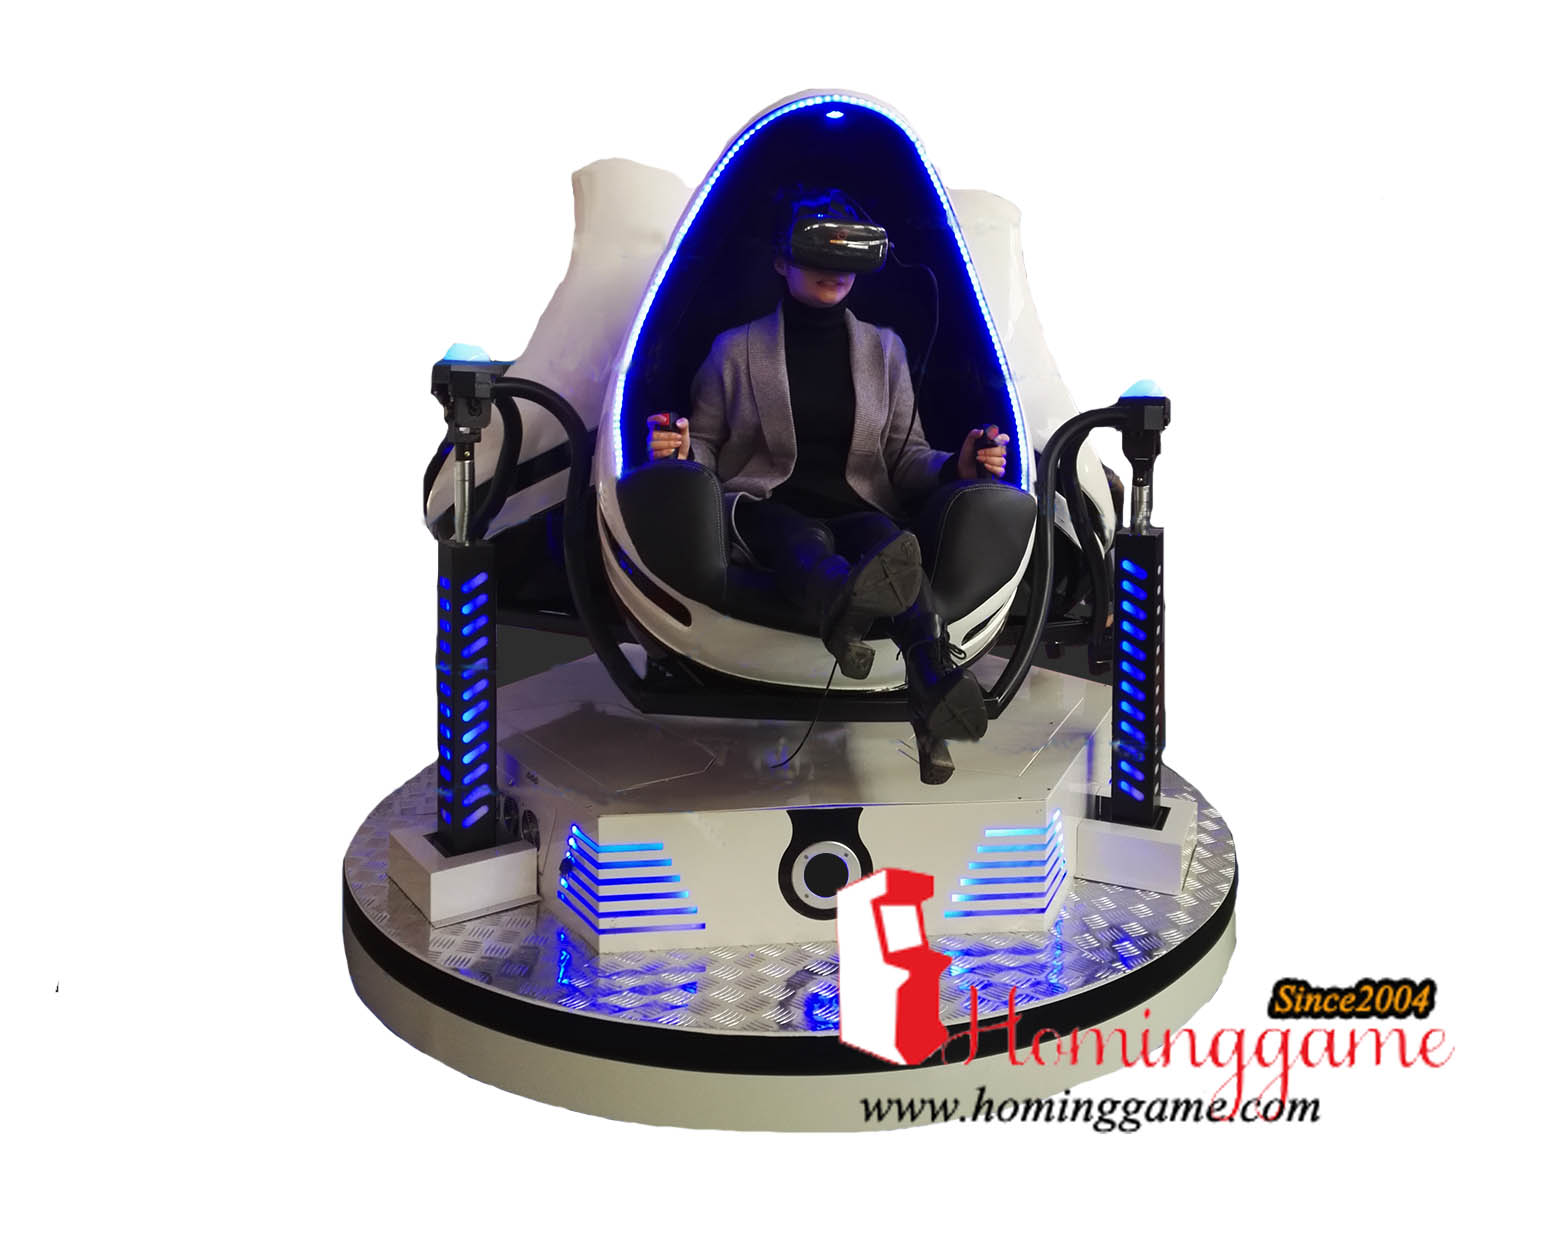 HomingGame Hot Sale 2 Seats 9D VR Egg Reality Cinema Video Arcade Game